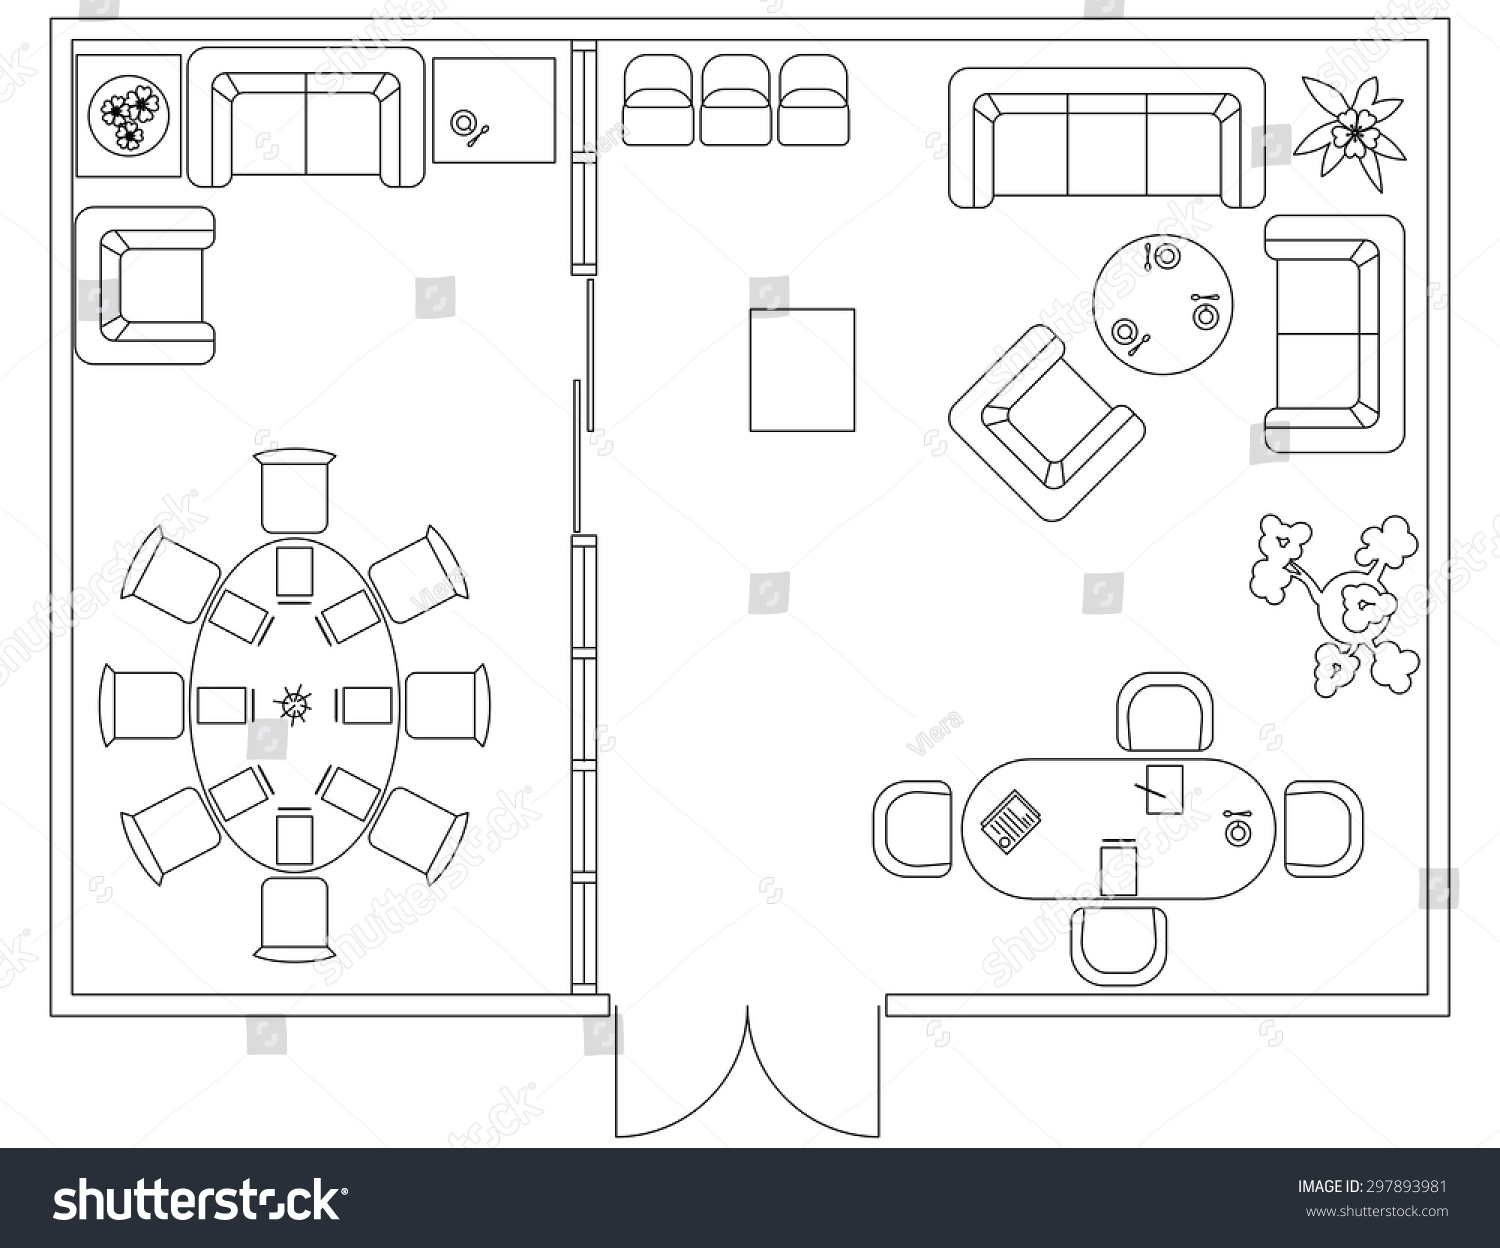 Furniture Design Elements architectural set furniture design elements floor stock vector